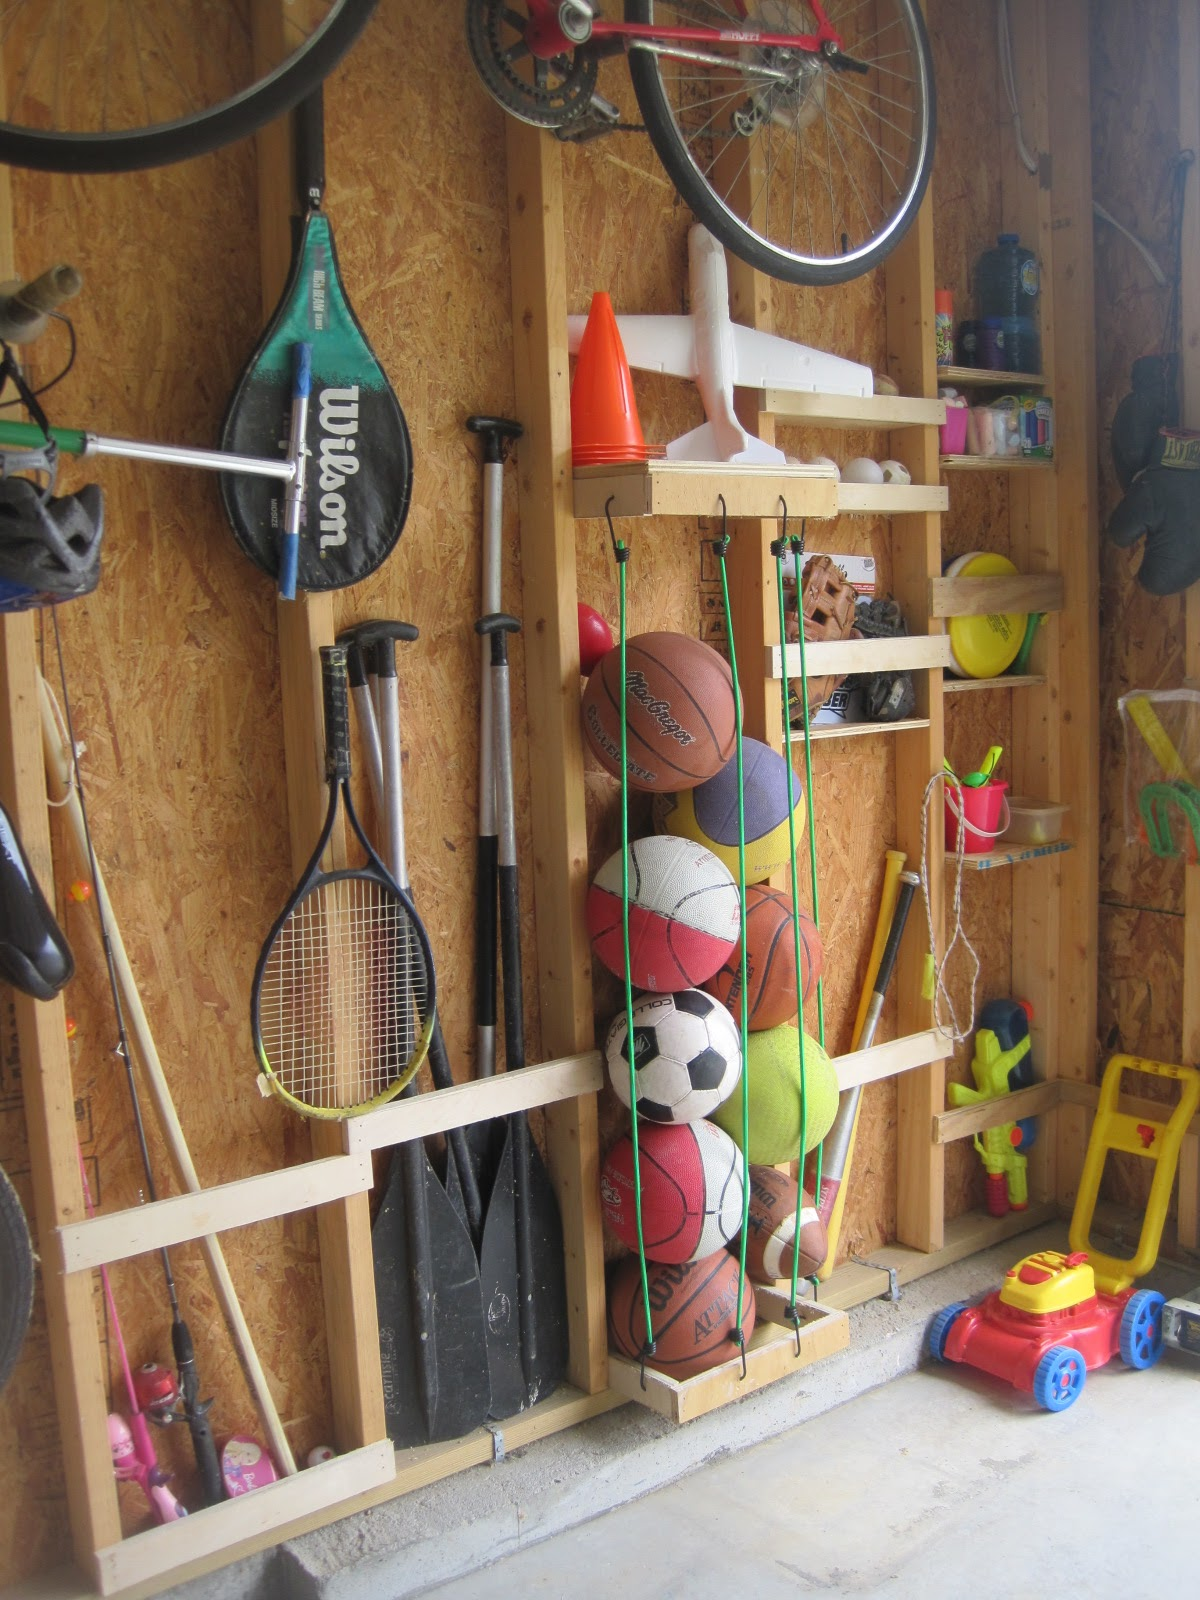 Ball storage system with cords